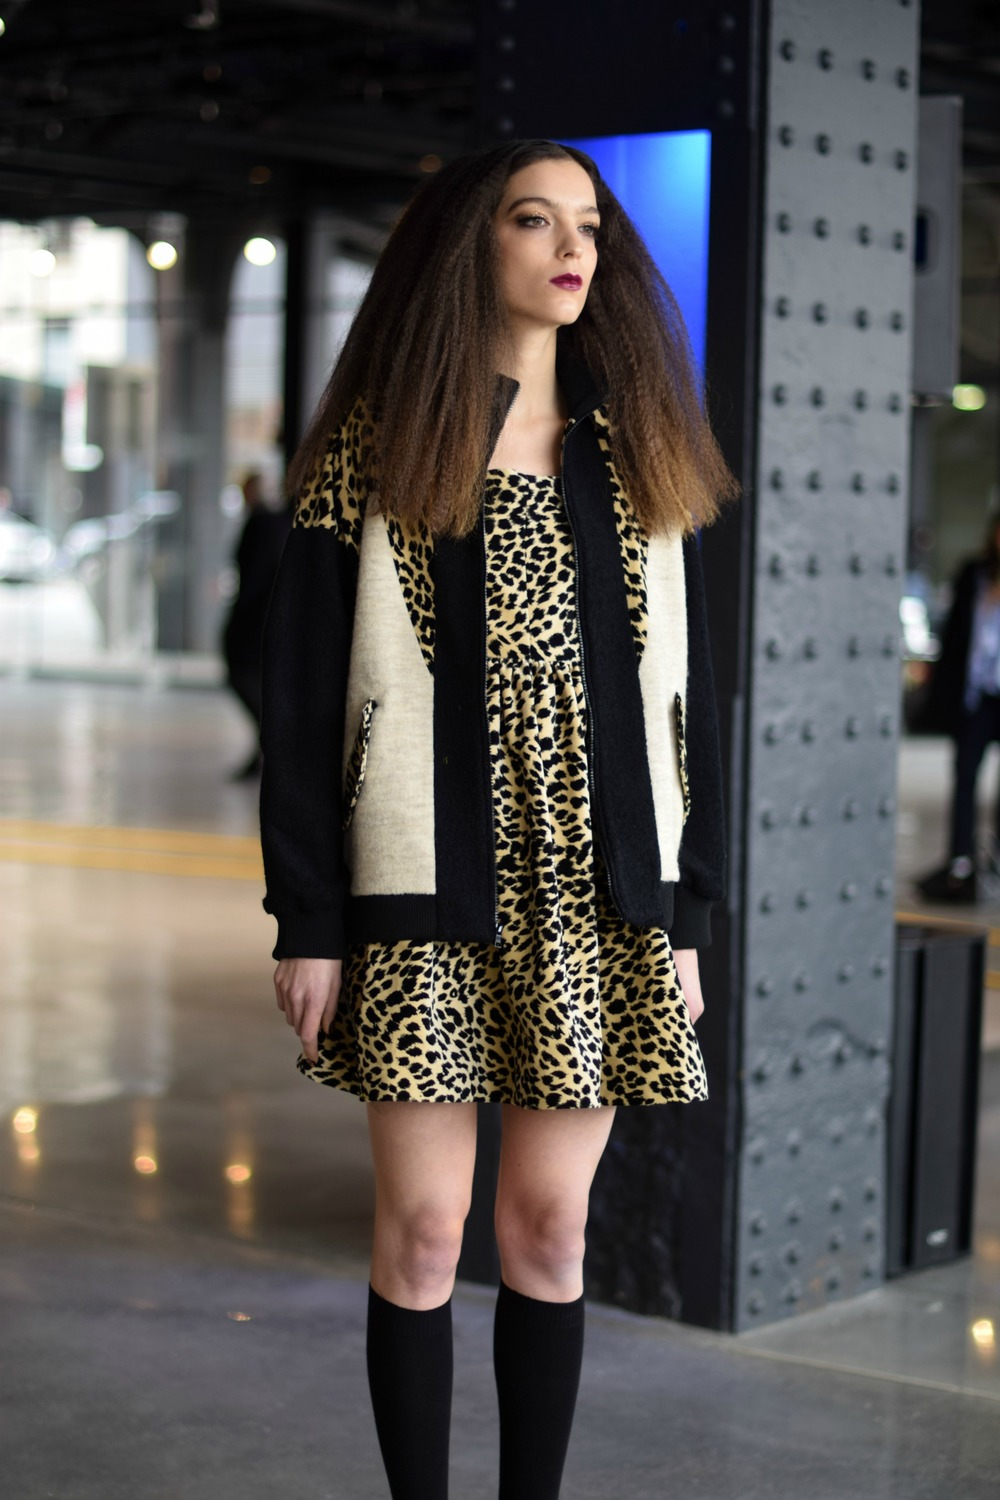 NYFW Saunder Fashion Presentation Fall:Winter 2016 Louboutins & Love Fashion Blog Esther Santer NYC Street Style Runway Models Collection Hair Beauty Inspo Front Row Press Event Coverage Photos Details Shop Dress Gown Trends Pretty Beautiful Gorgeous.jpg